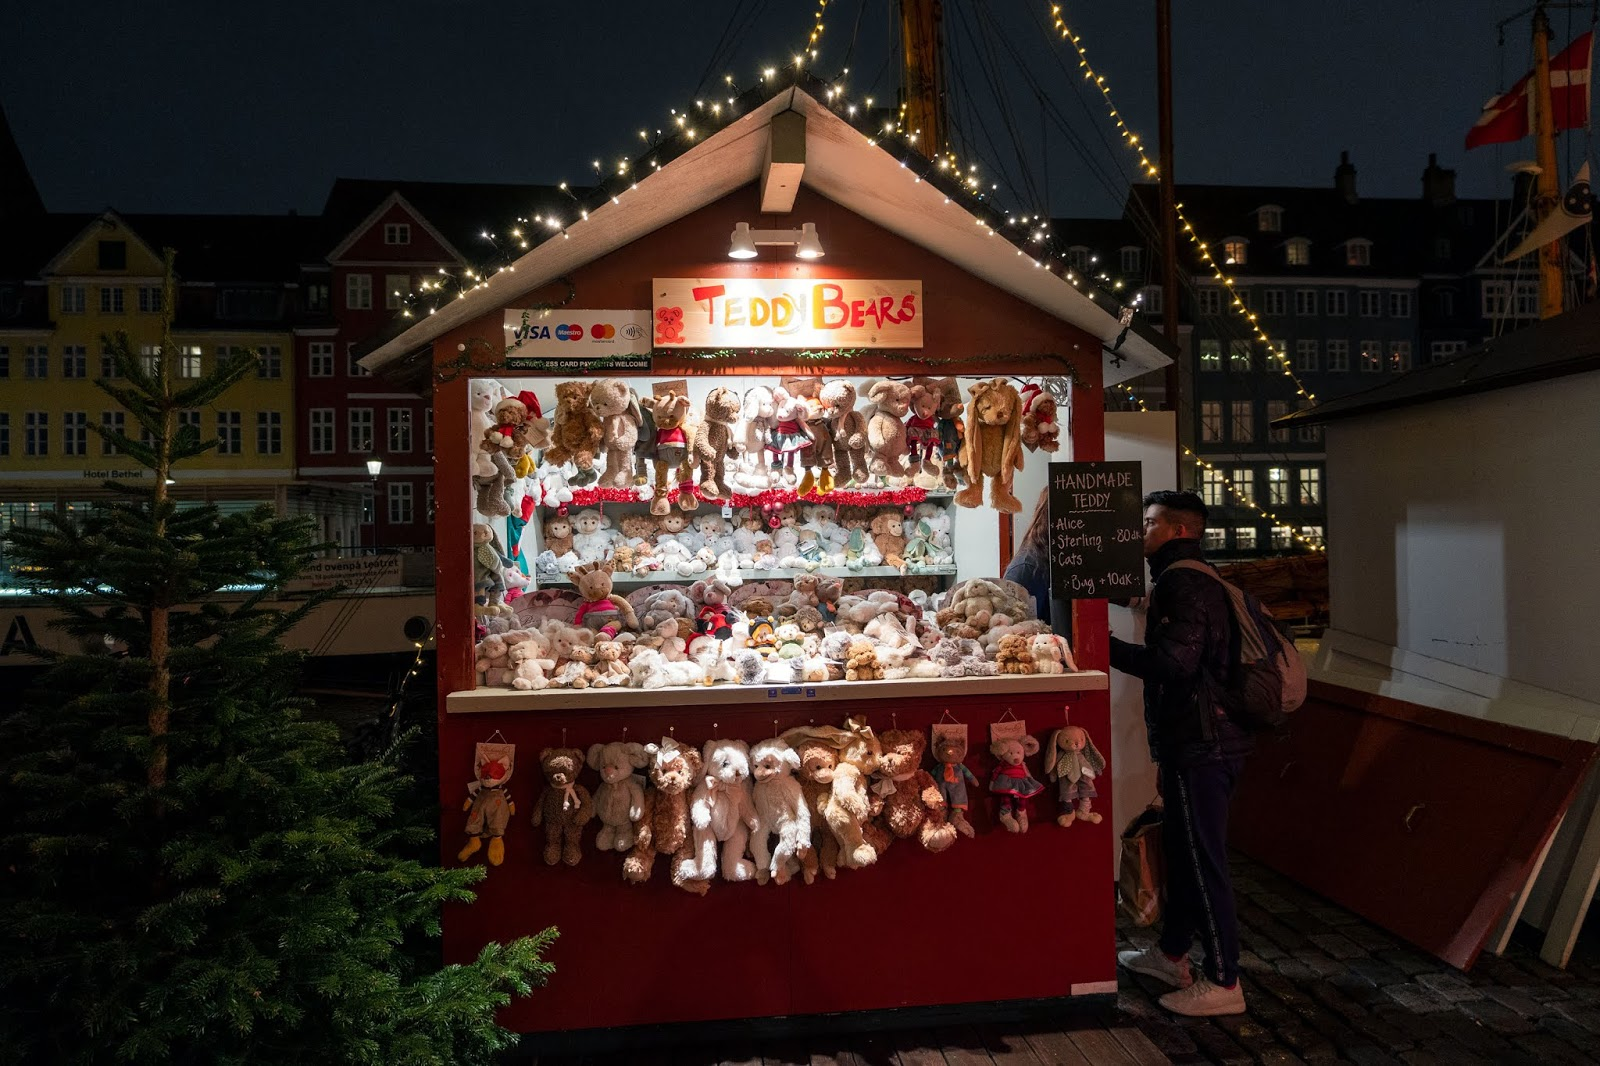 Teddy bear stall at the Nyhavn Christmas Market in Copenhagen, Denmark